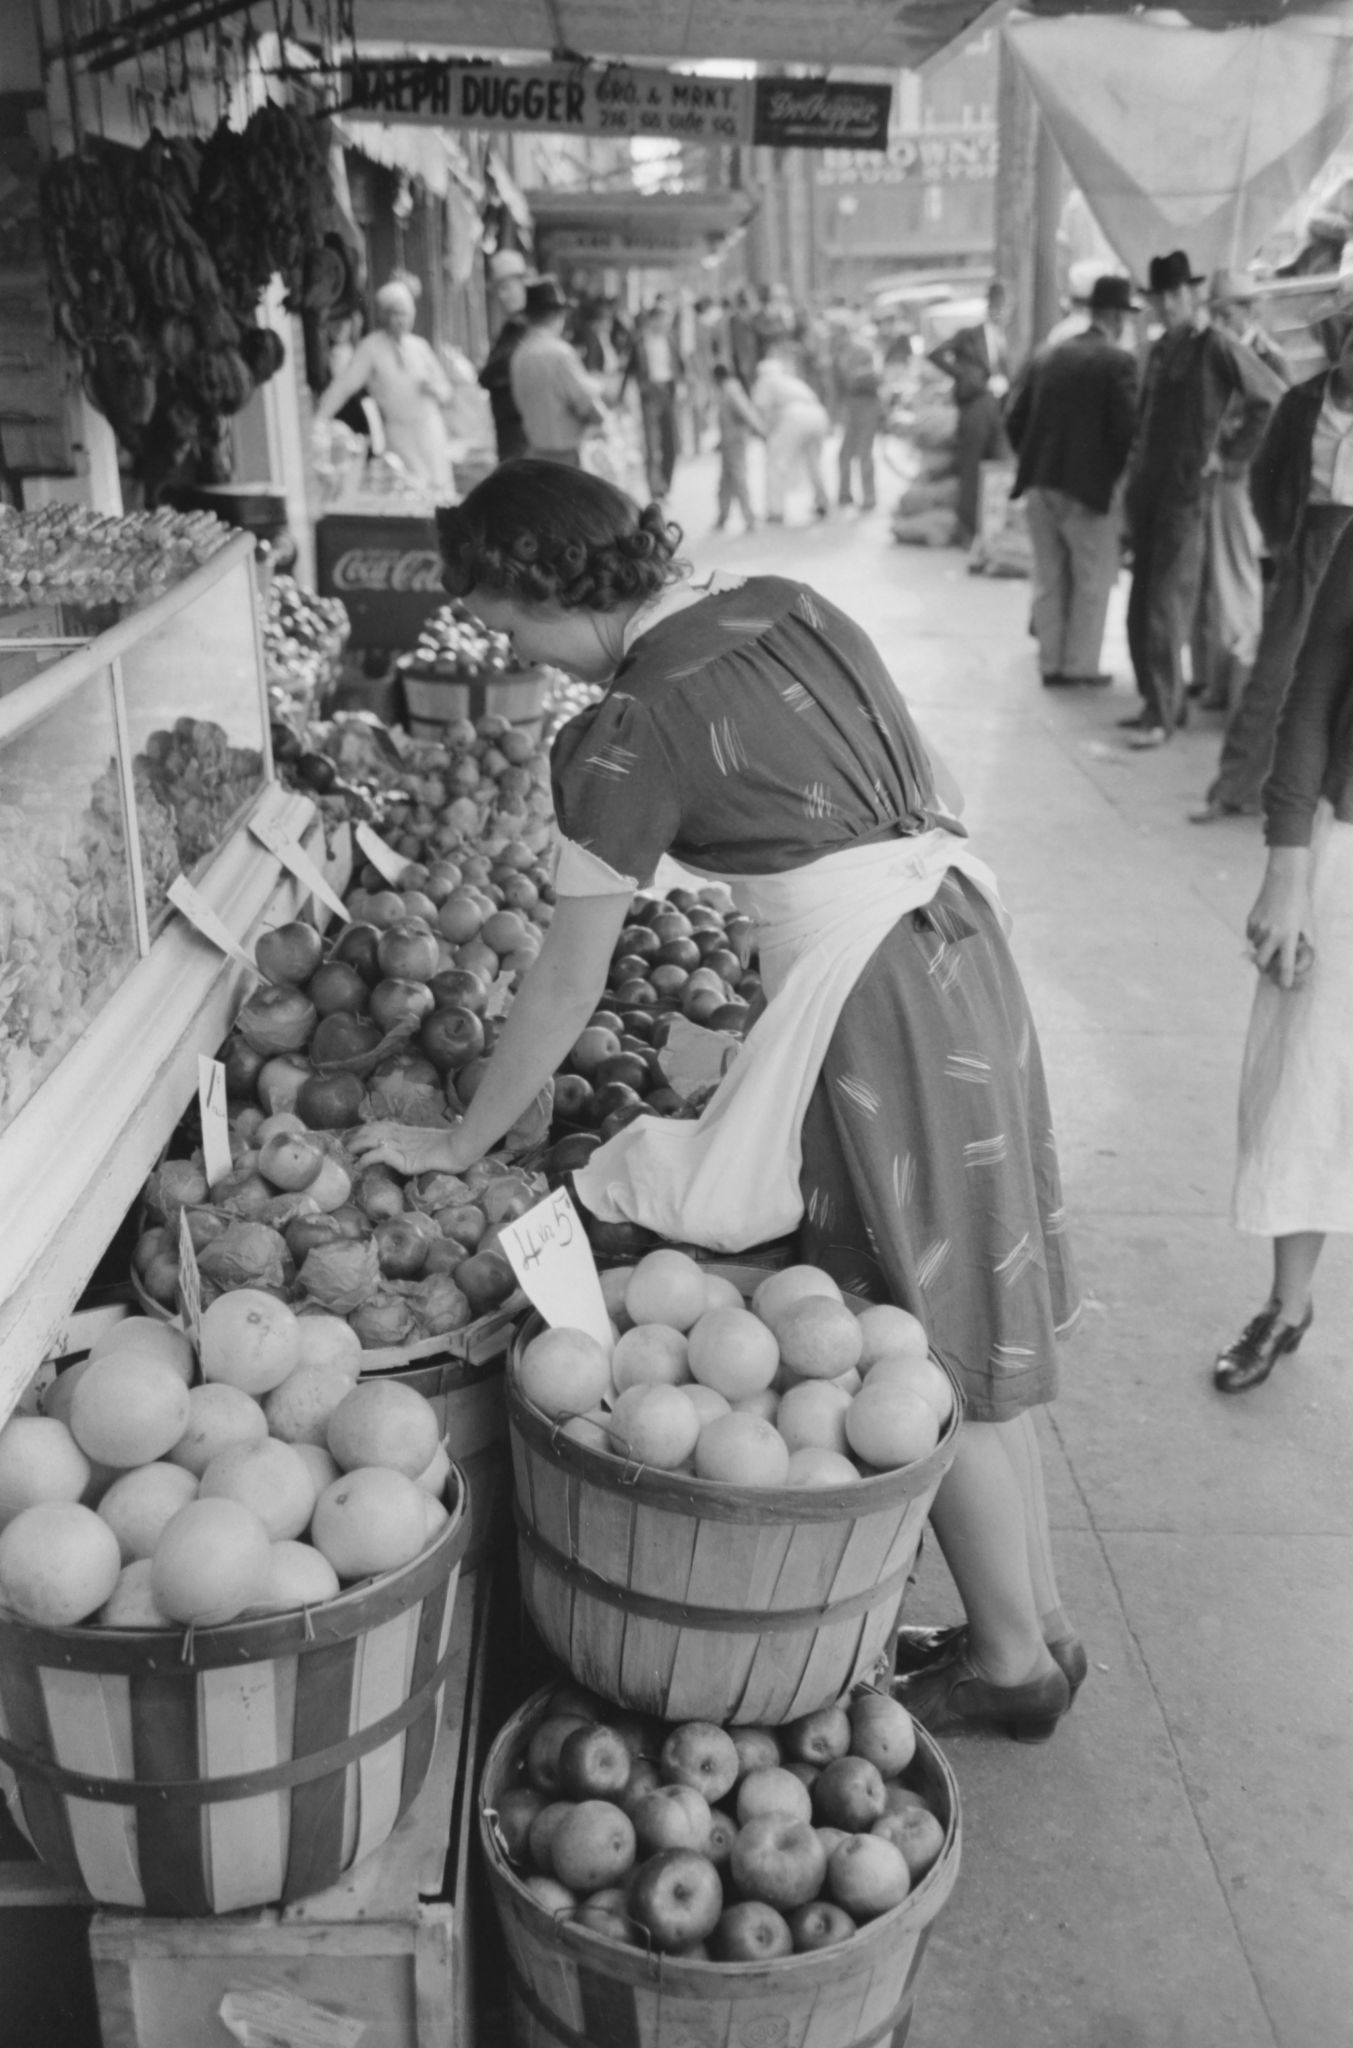 Vintage Photos Peek Into What Texas Grocery Stores